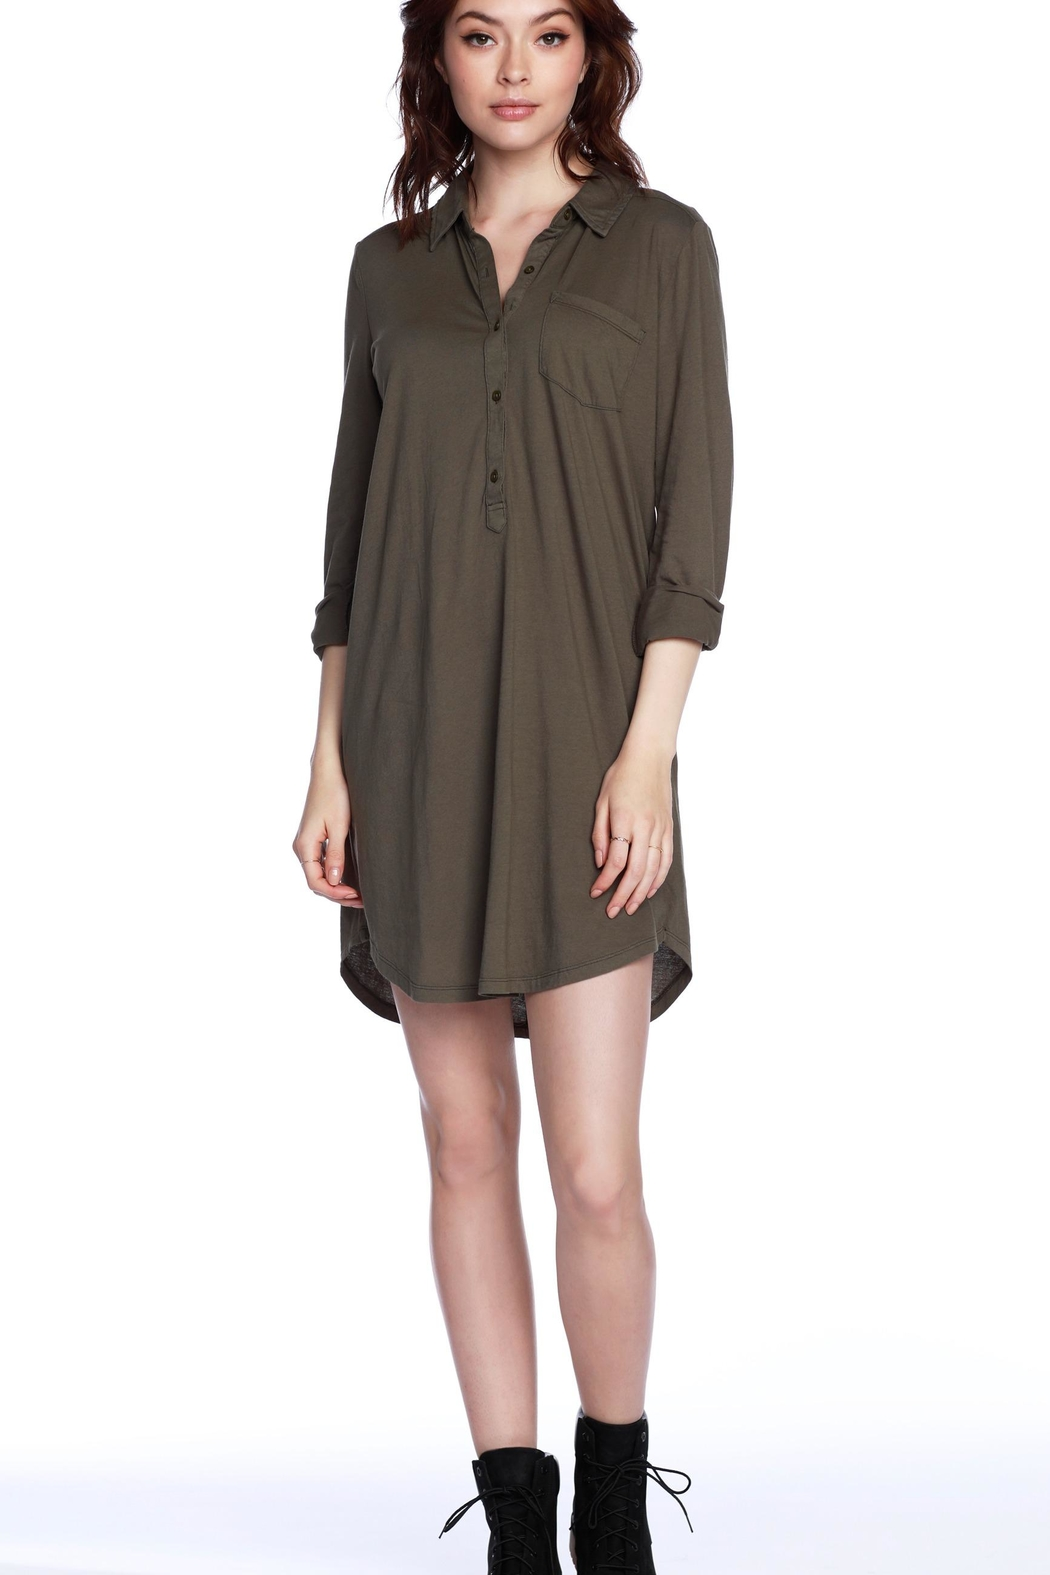 Bobi Los Angeles Bobi Olive Shirtdress - Main Image